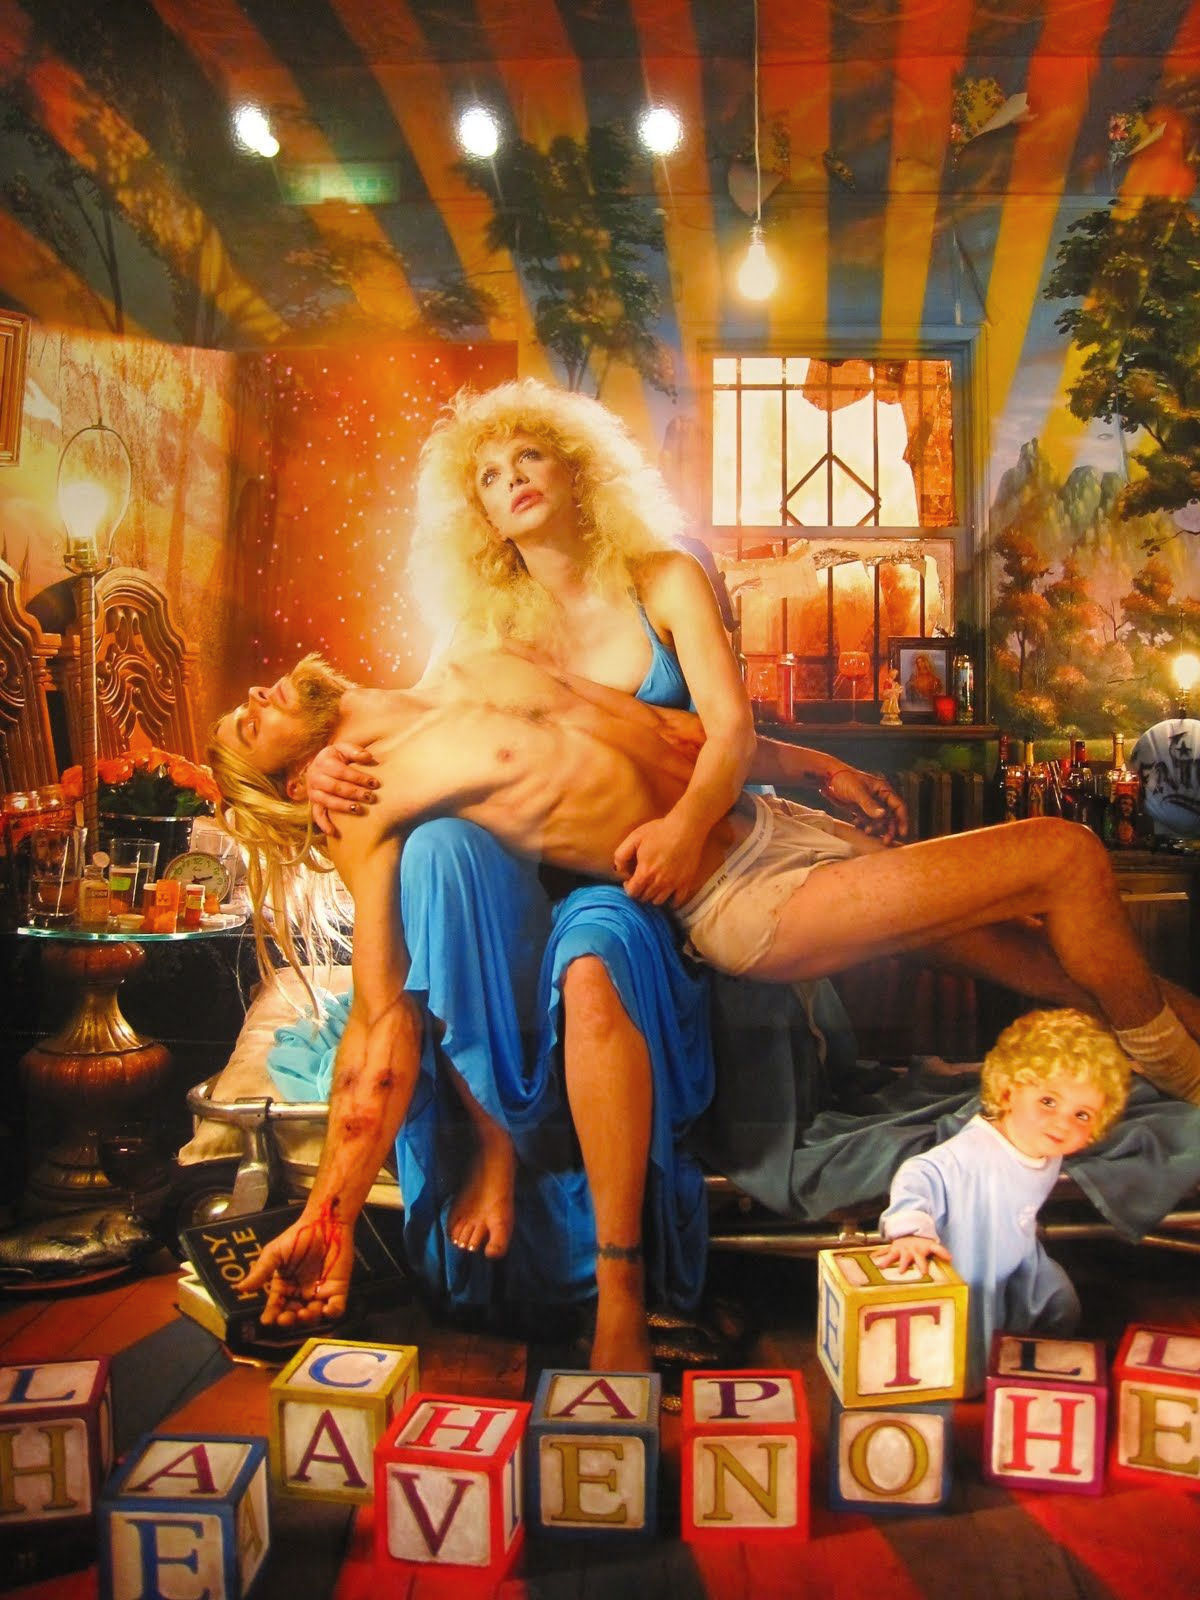 Pietà - David LaChapelle (Heaven to Hell)